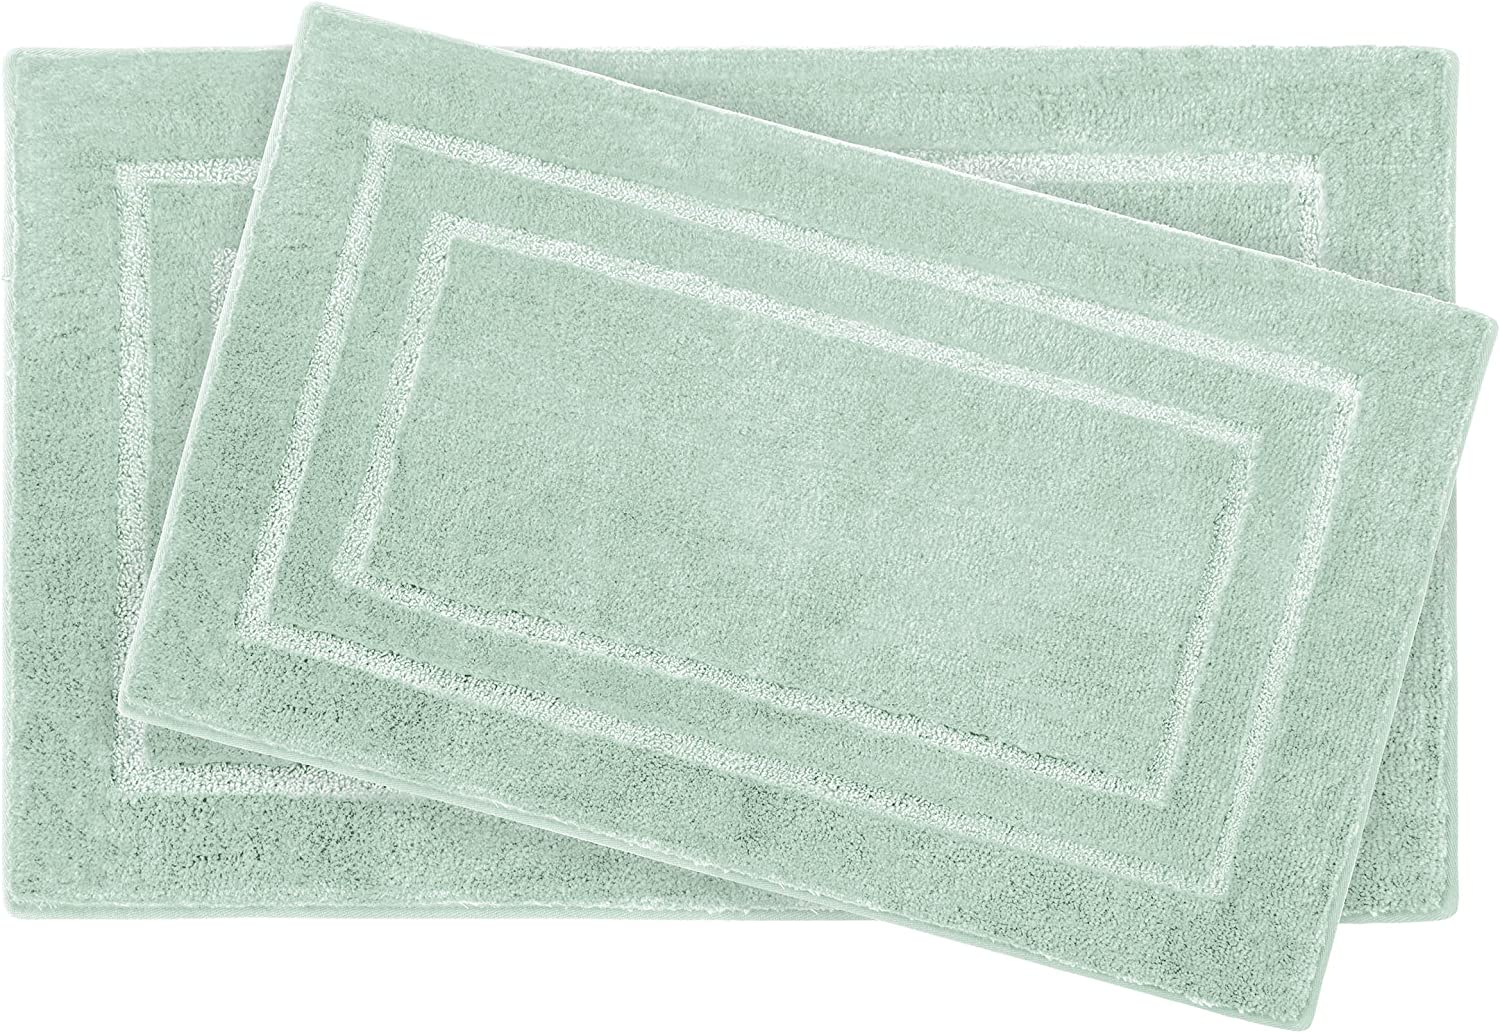 Laura Ashley Pearl Double Border 20 x 32  2 Piece Bath Mat Set, Sea Foam